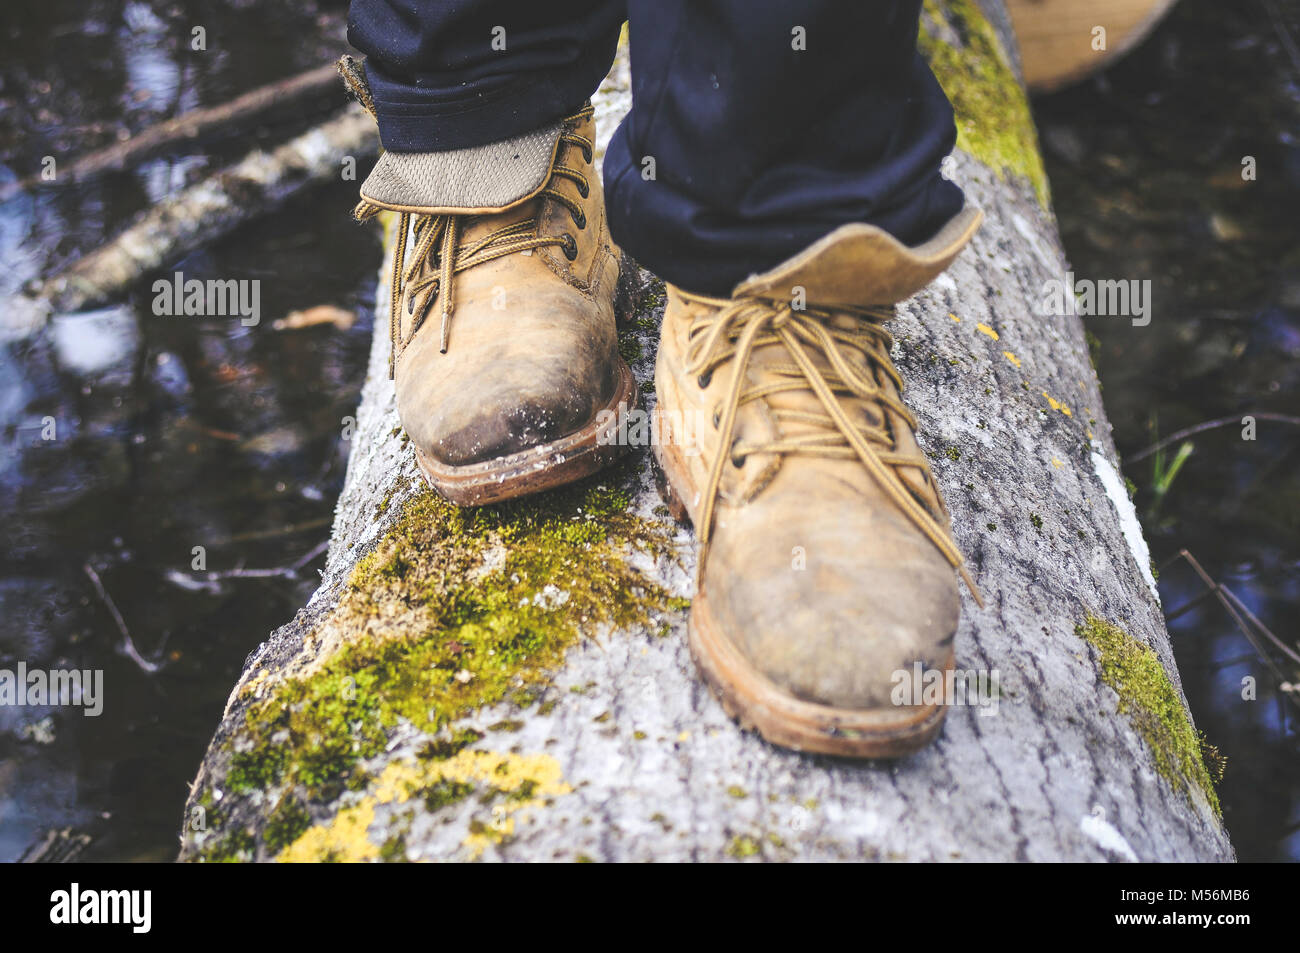 Stands on wooden trunk. Forest environment. - Stock Image